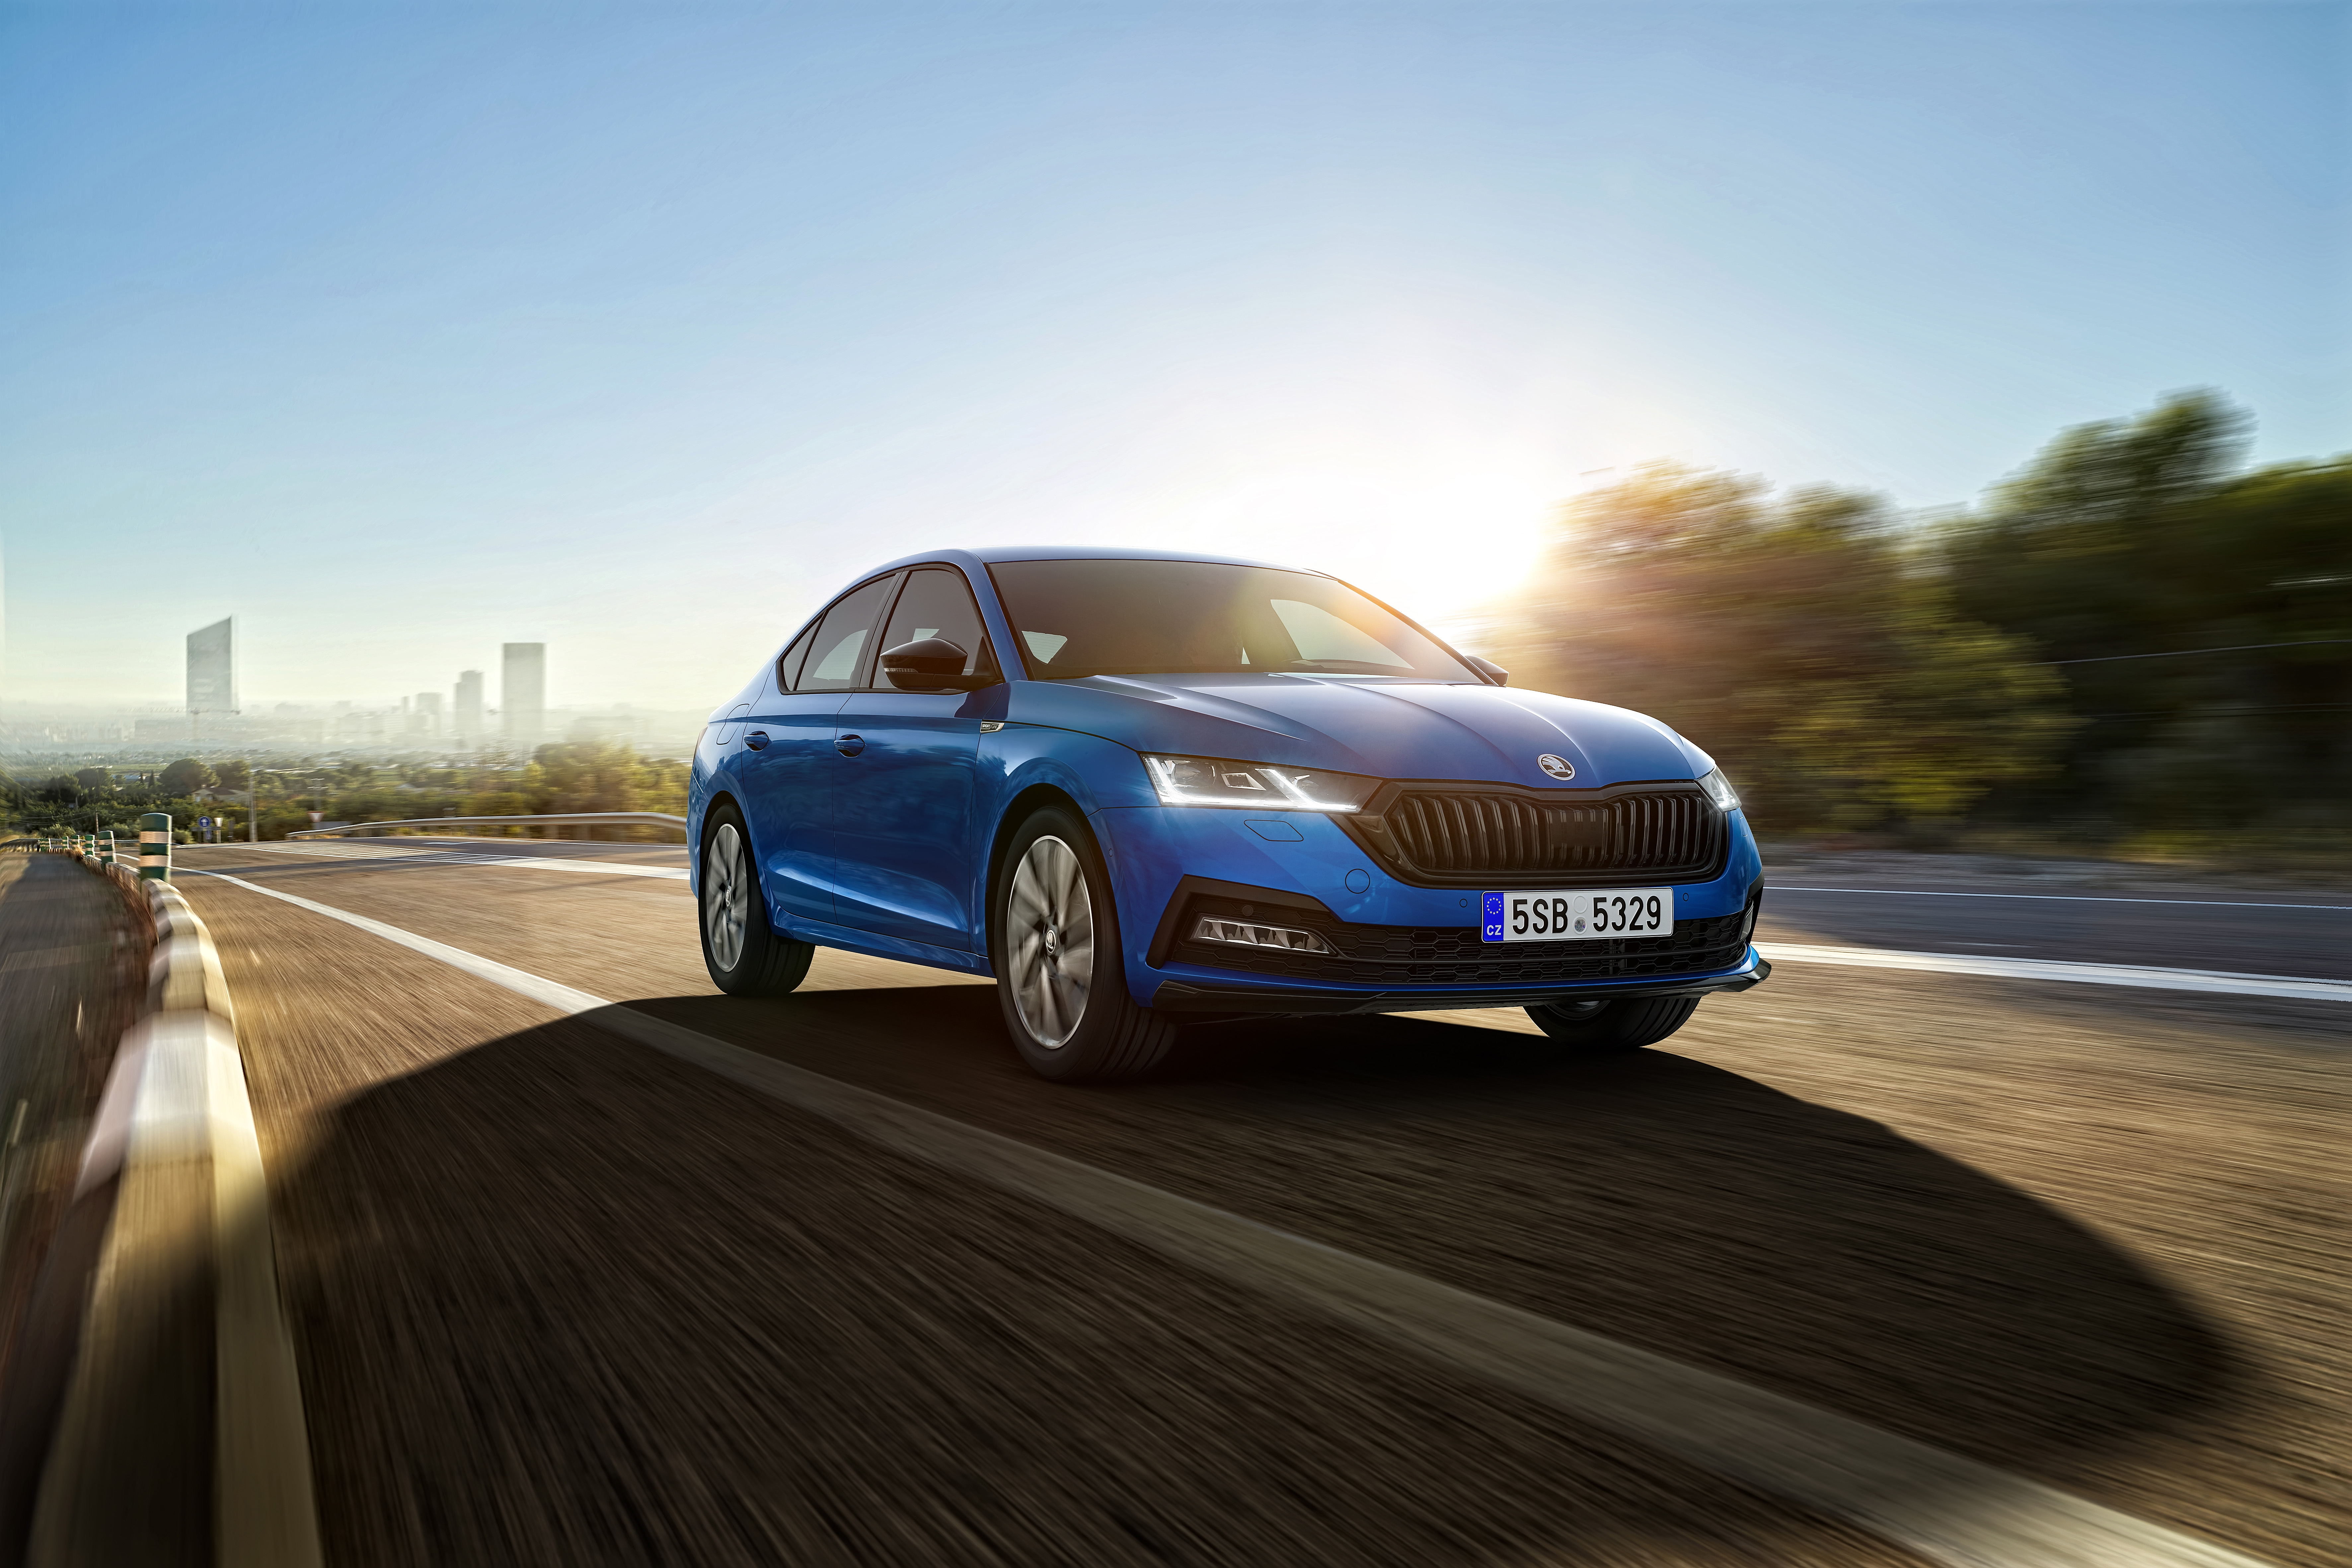 SKODA OCTAVIA available as SPORTLINE version for the first time - Image 4